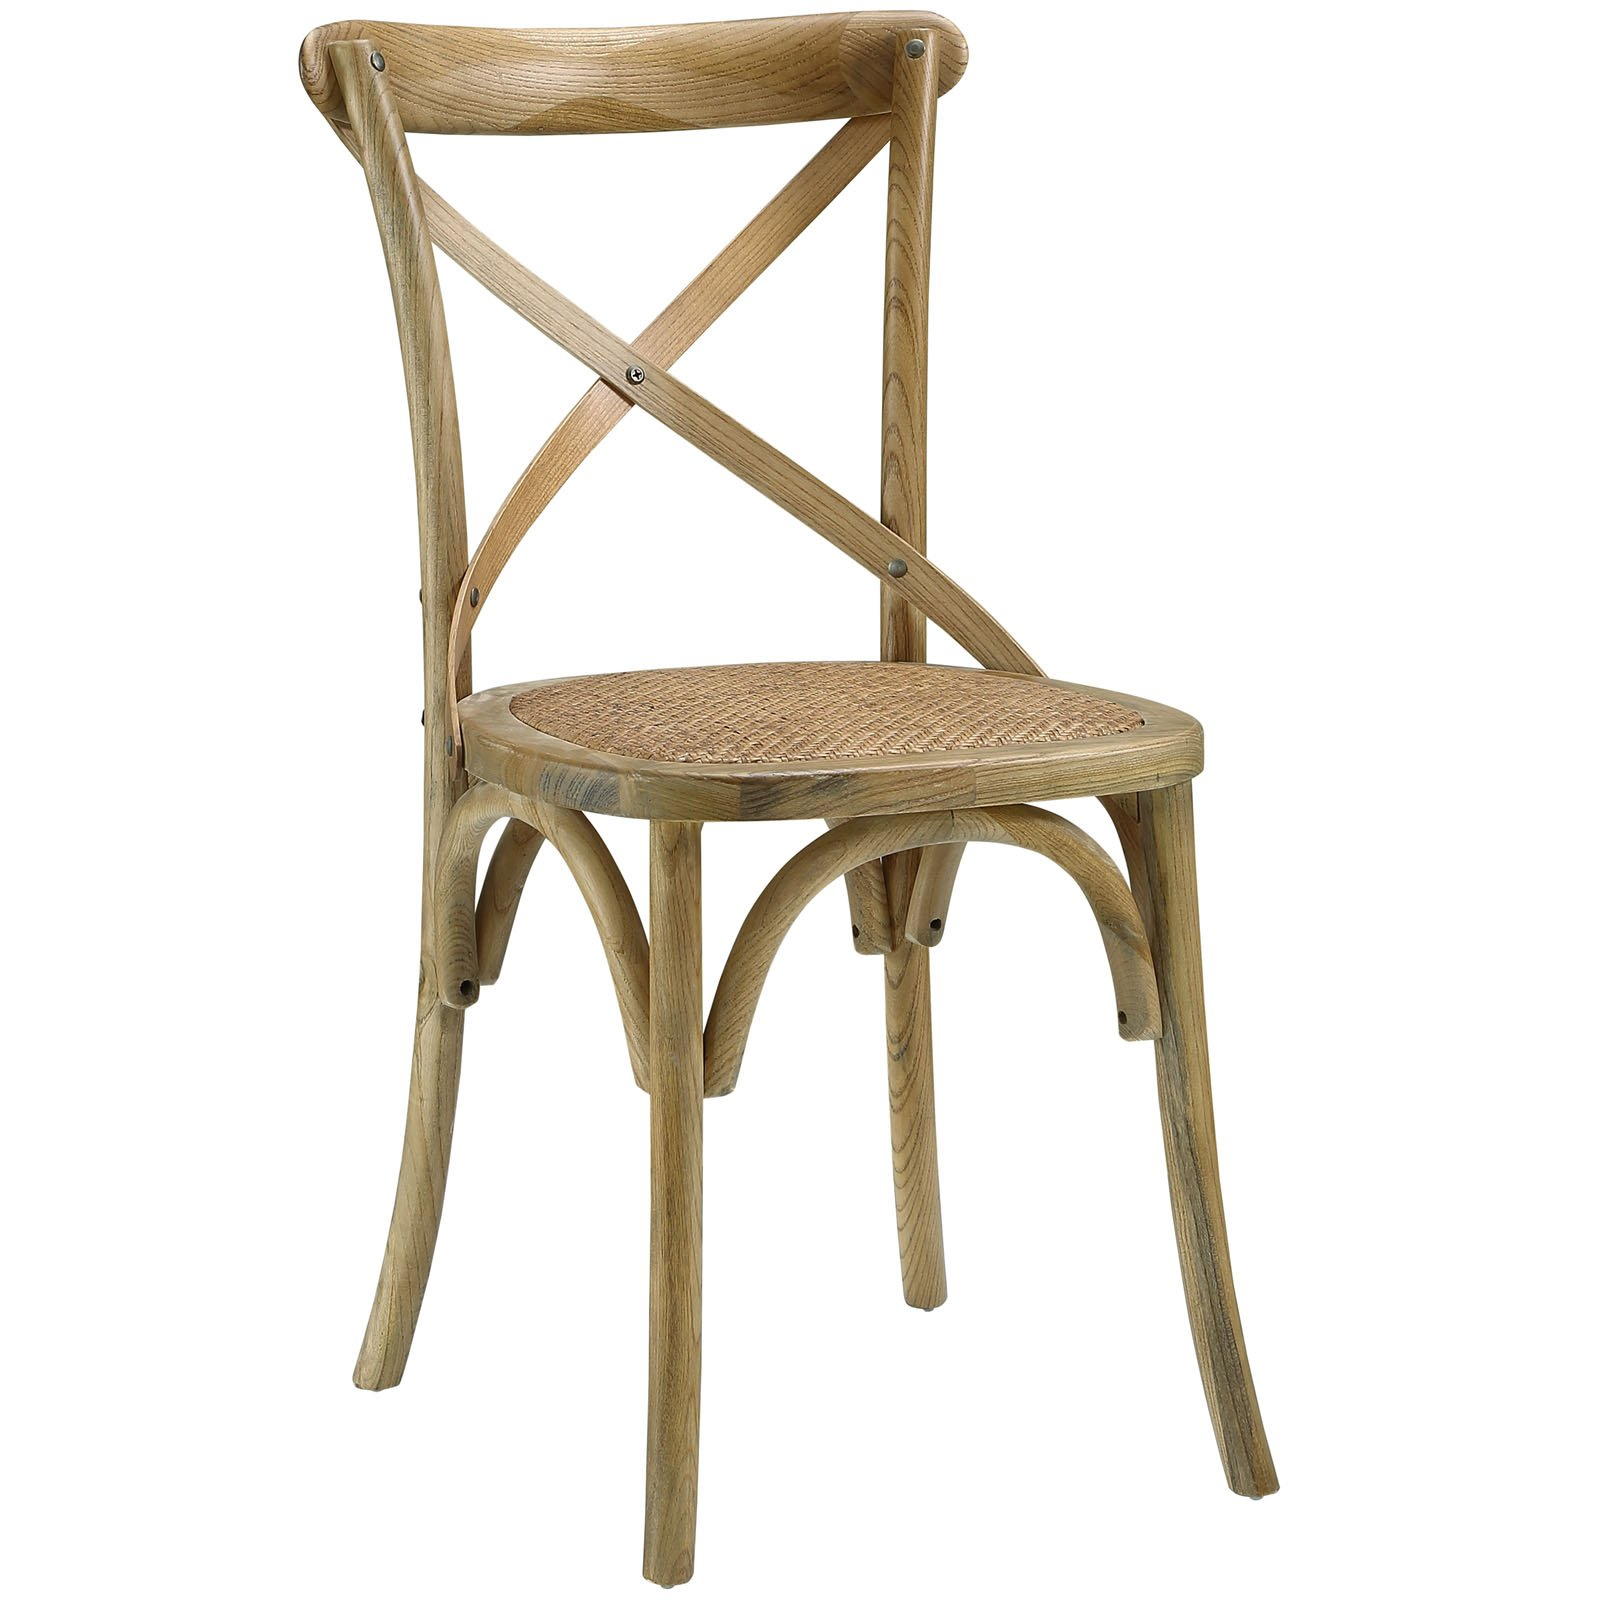 Modway Gear Rustic Farmhouse Elm Wood Rattan Kitchen and Dining Room Chair in Natural - Fully Assembled by Modway